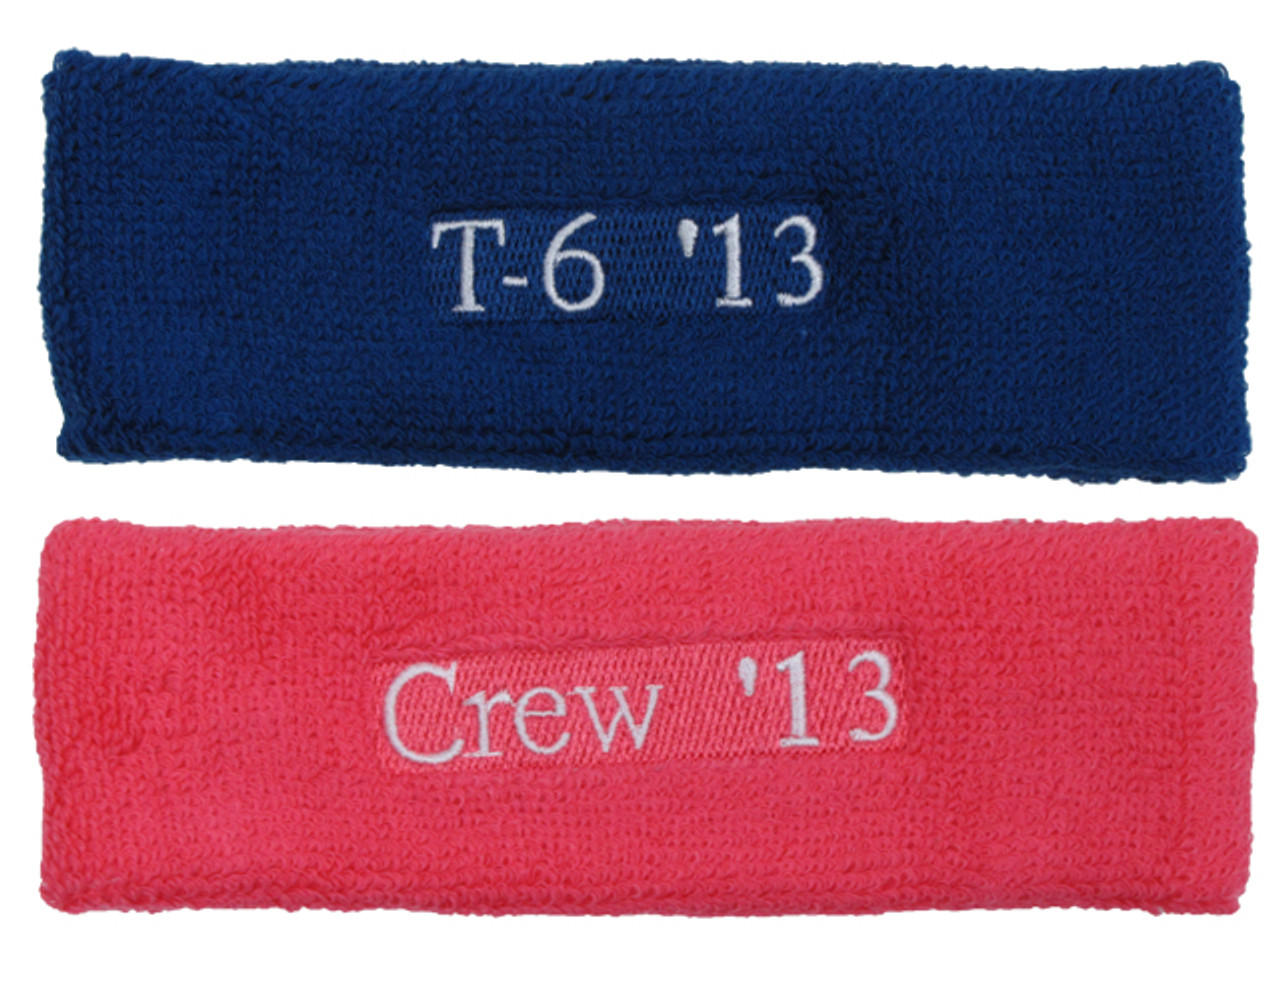 67b86e5fec89 Customized   Embroidery (Number